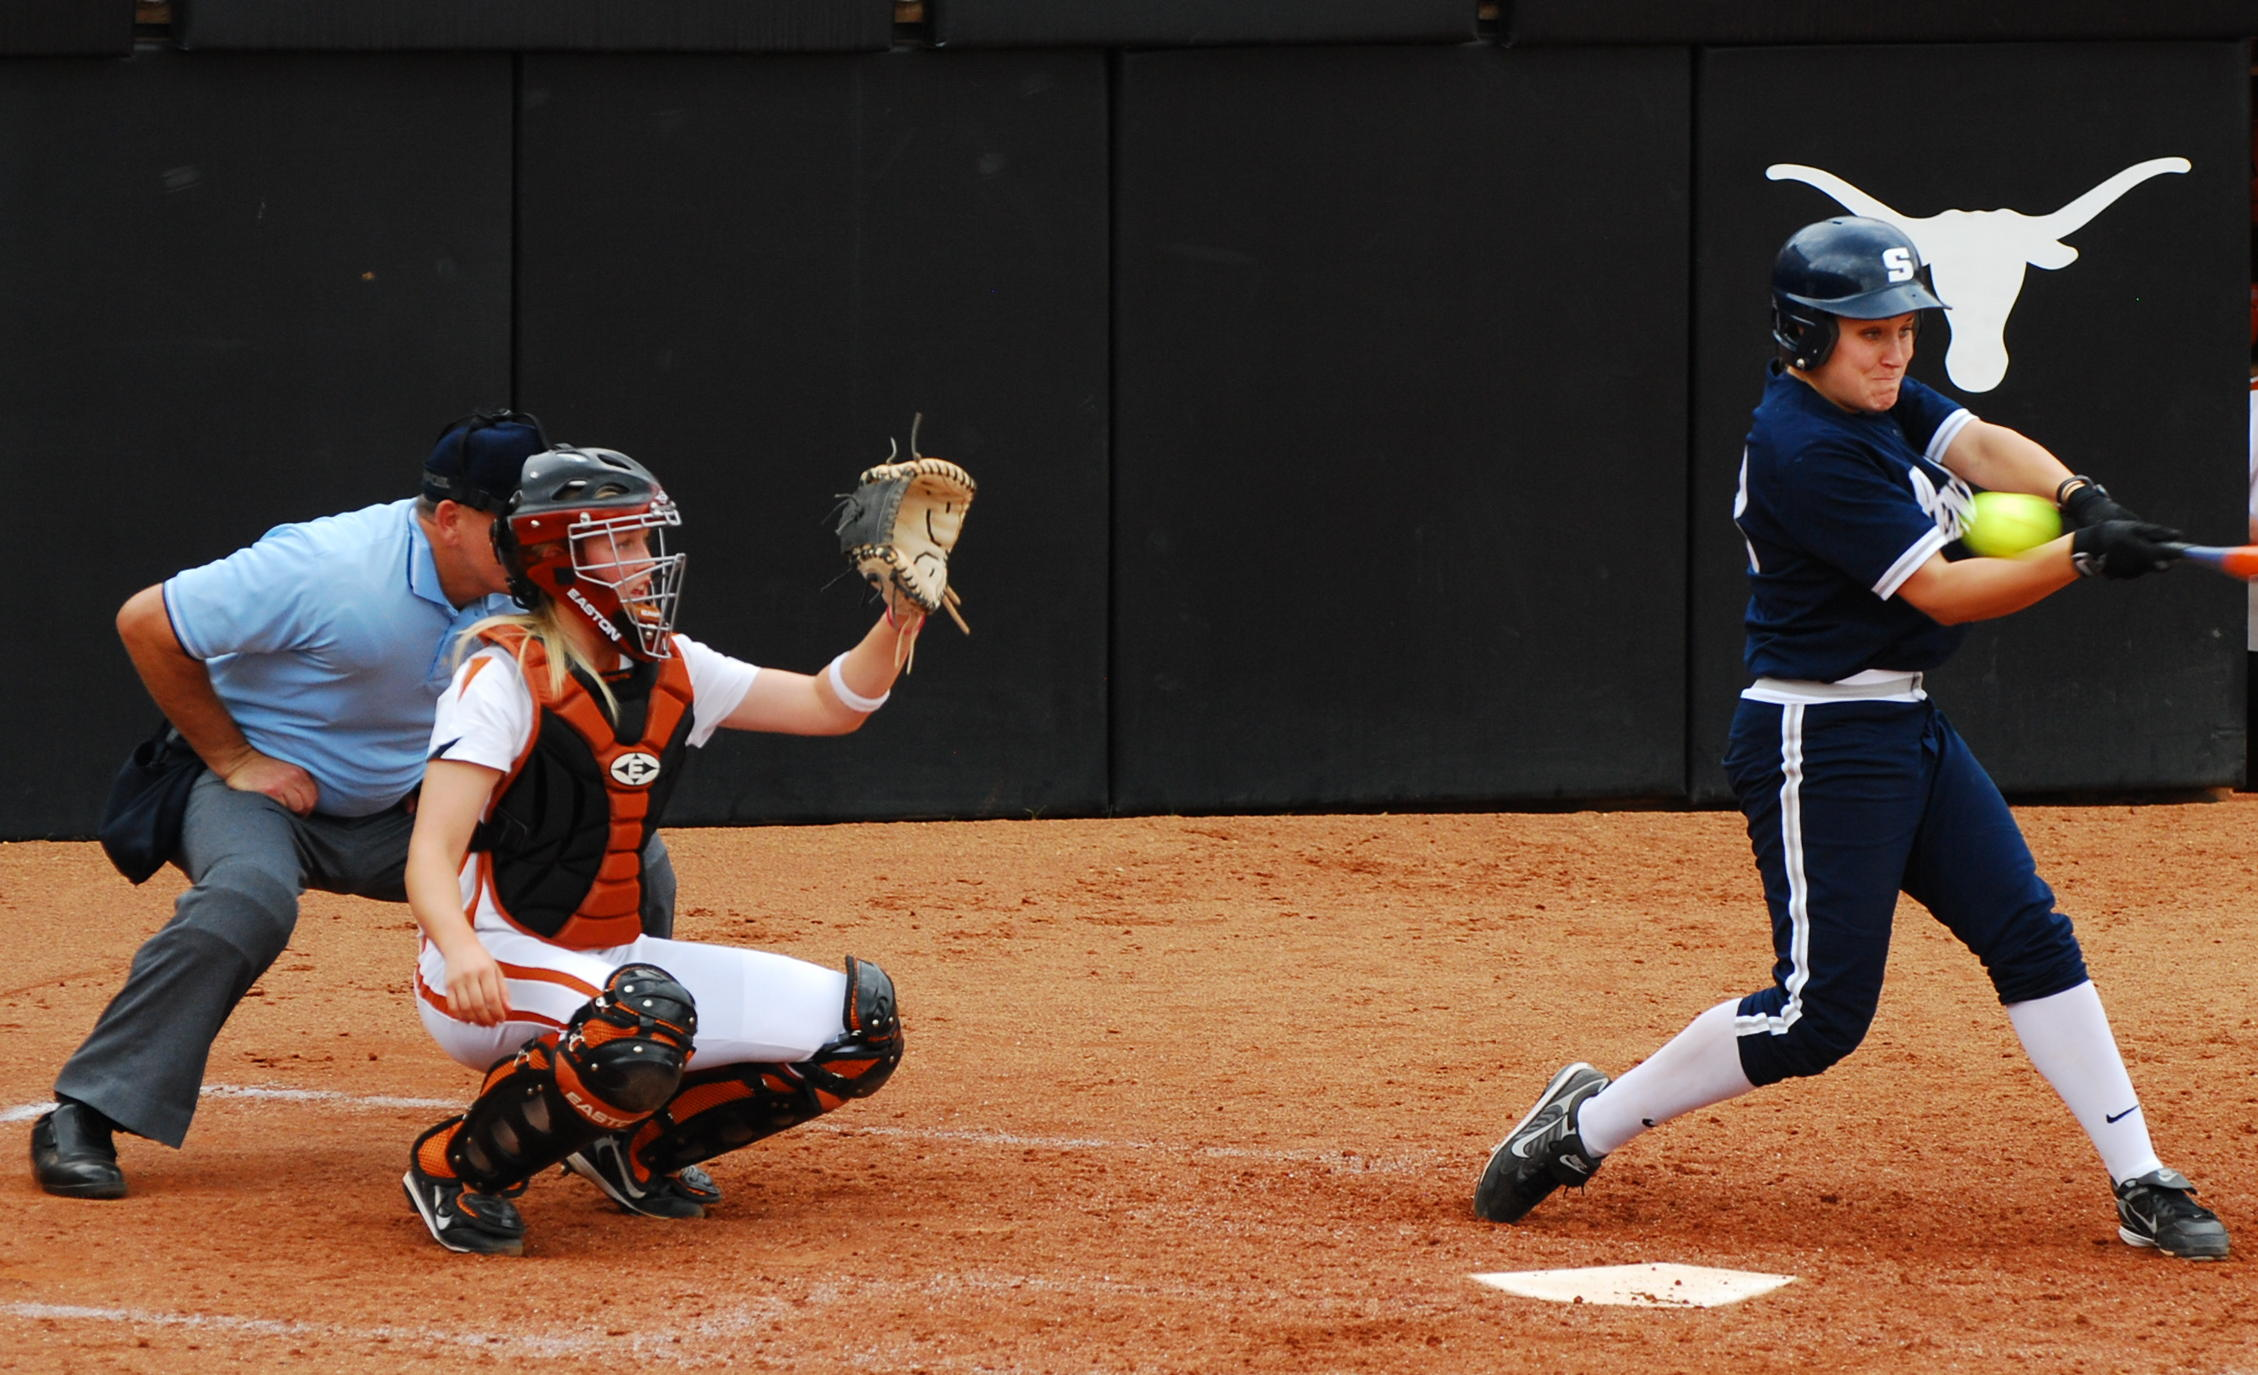 ut_softball_2007